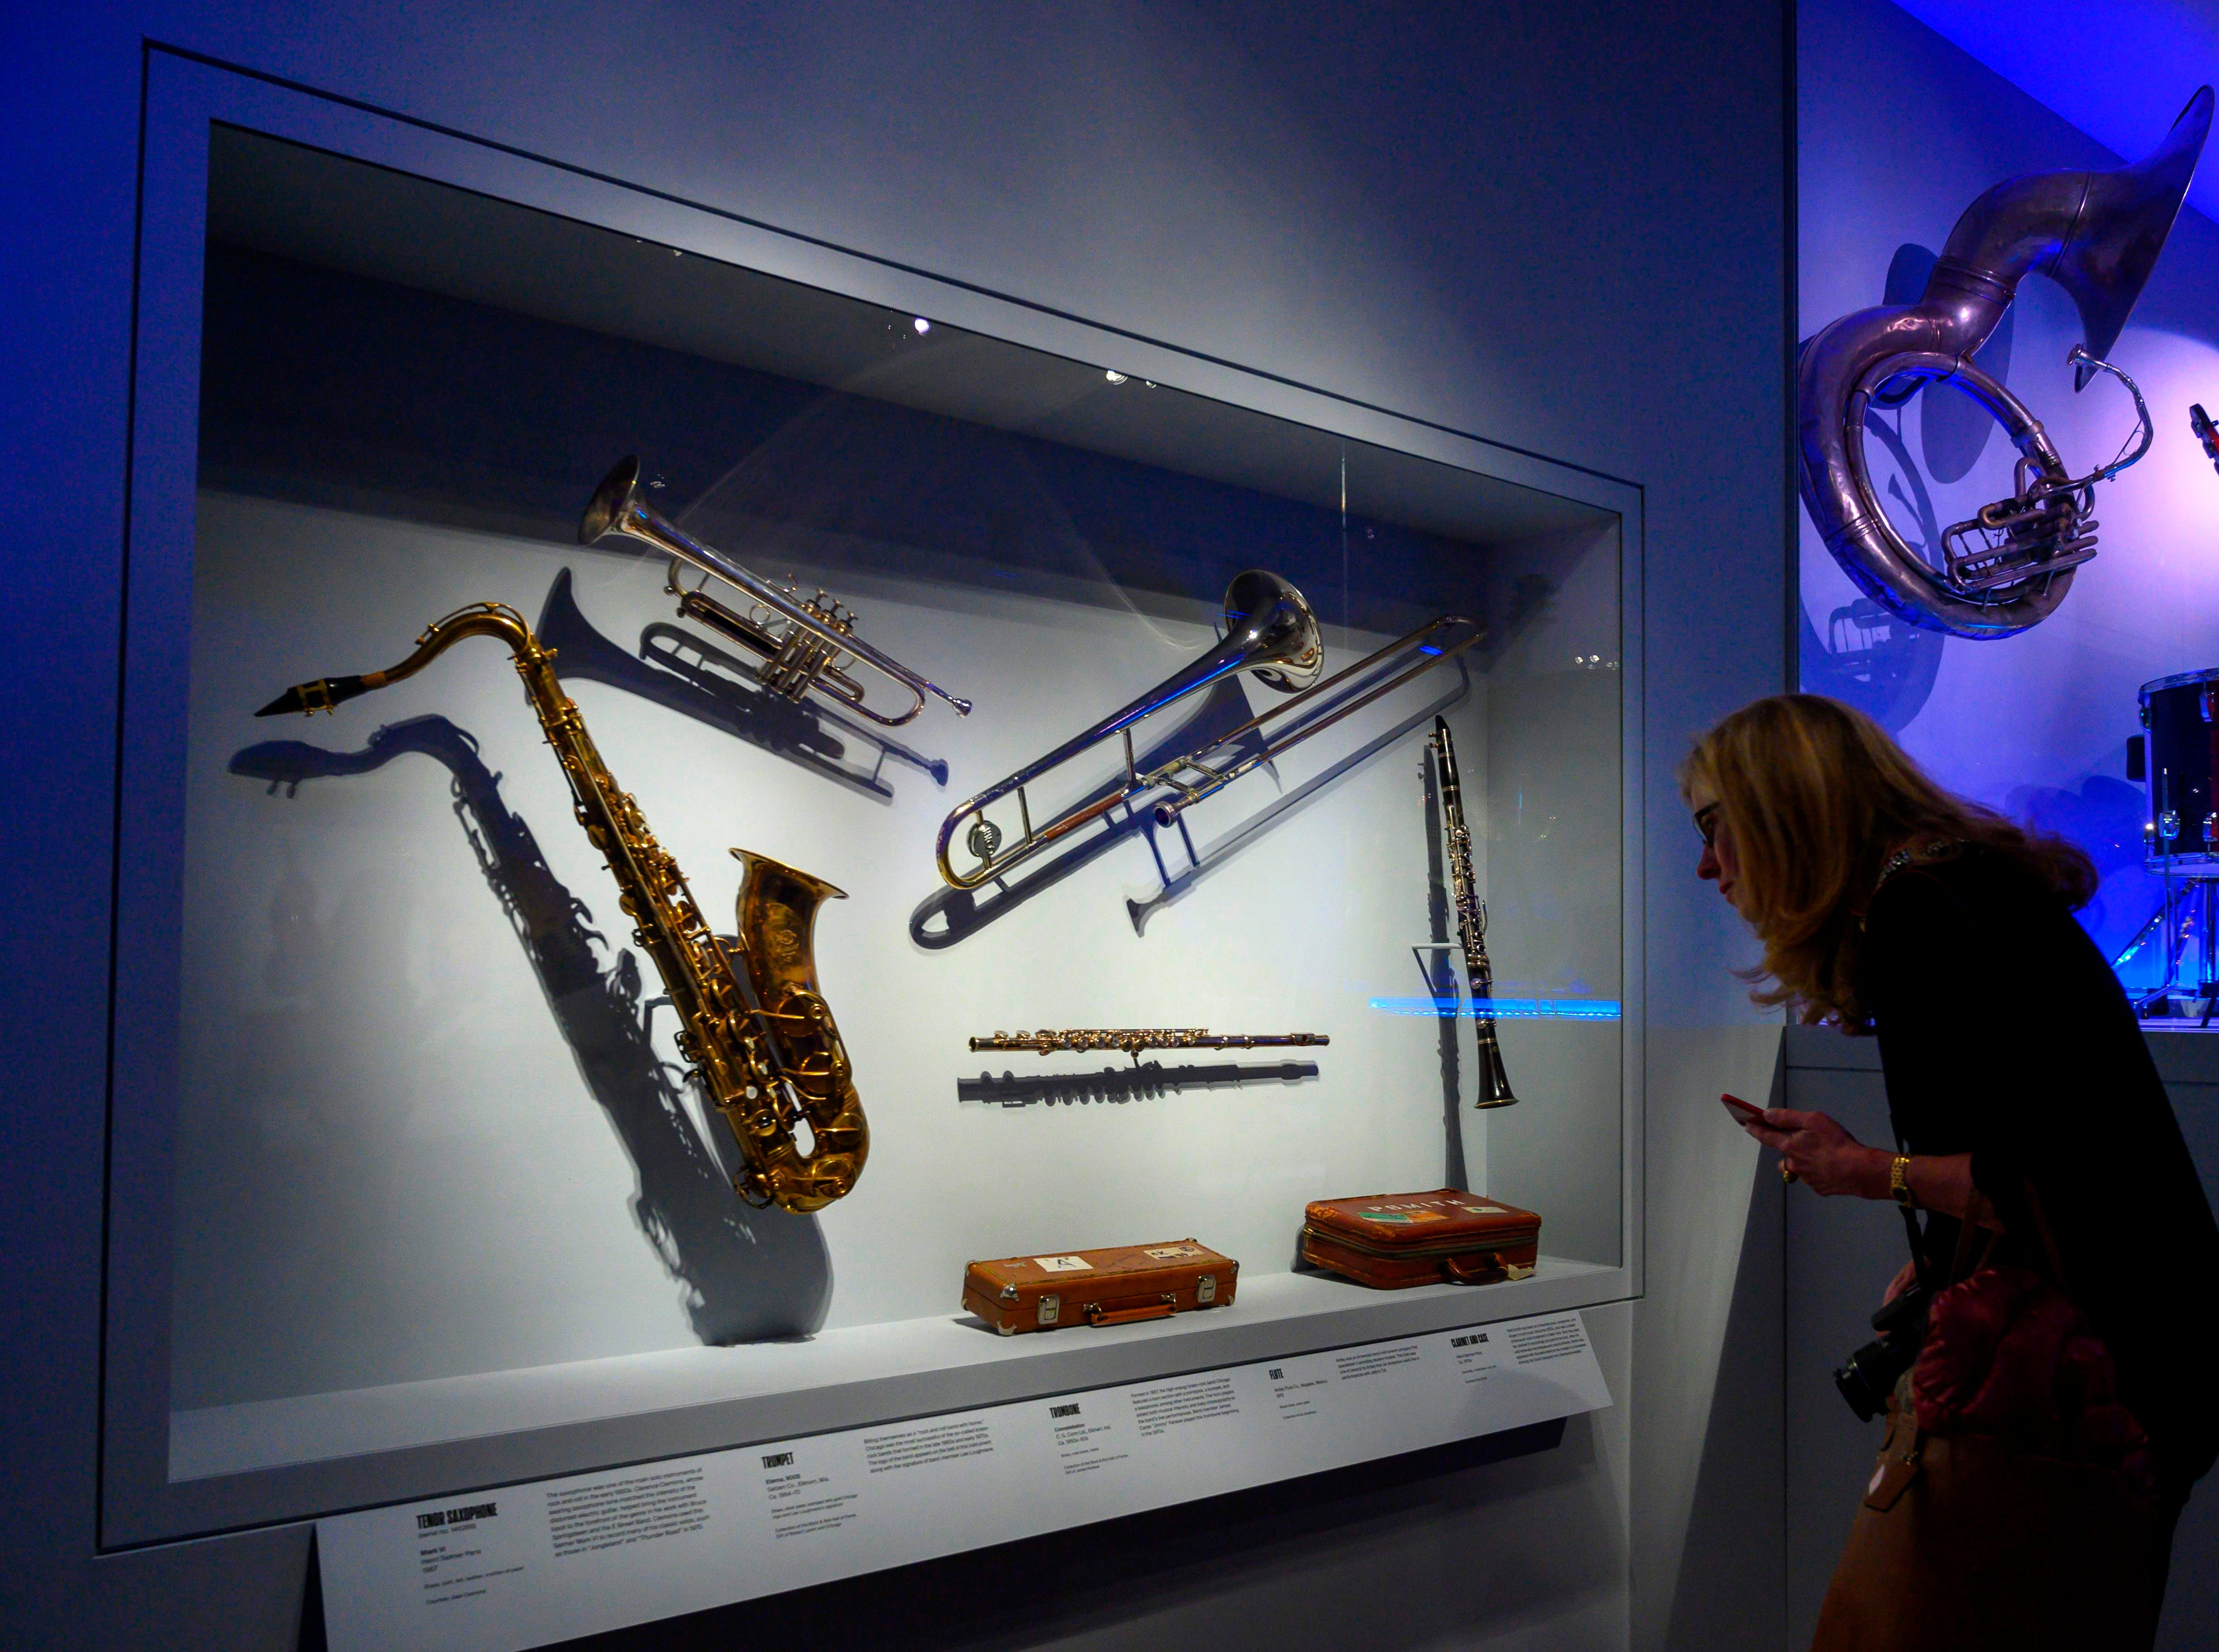 """A reporter looks at musical instruments during a media preview for an exhibit called """"Play It Loud: Instruments of Rock and Roll""""."""